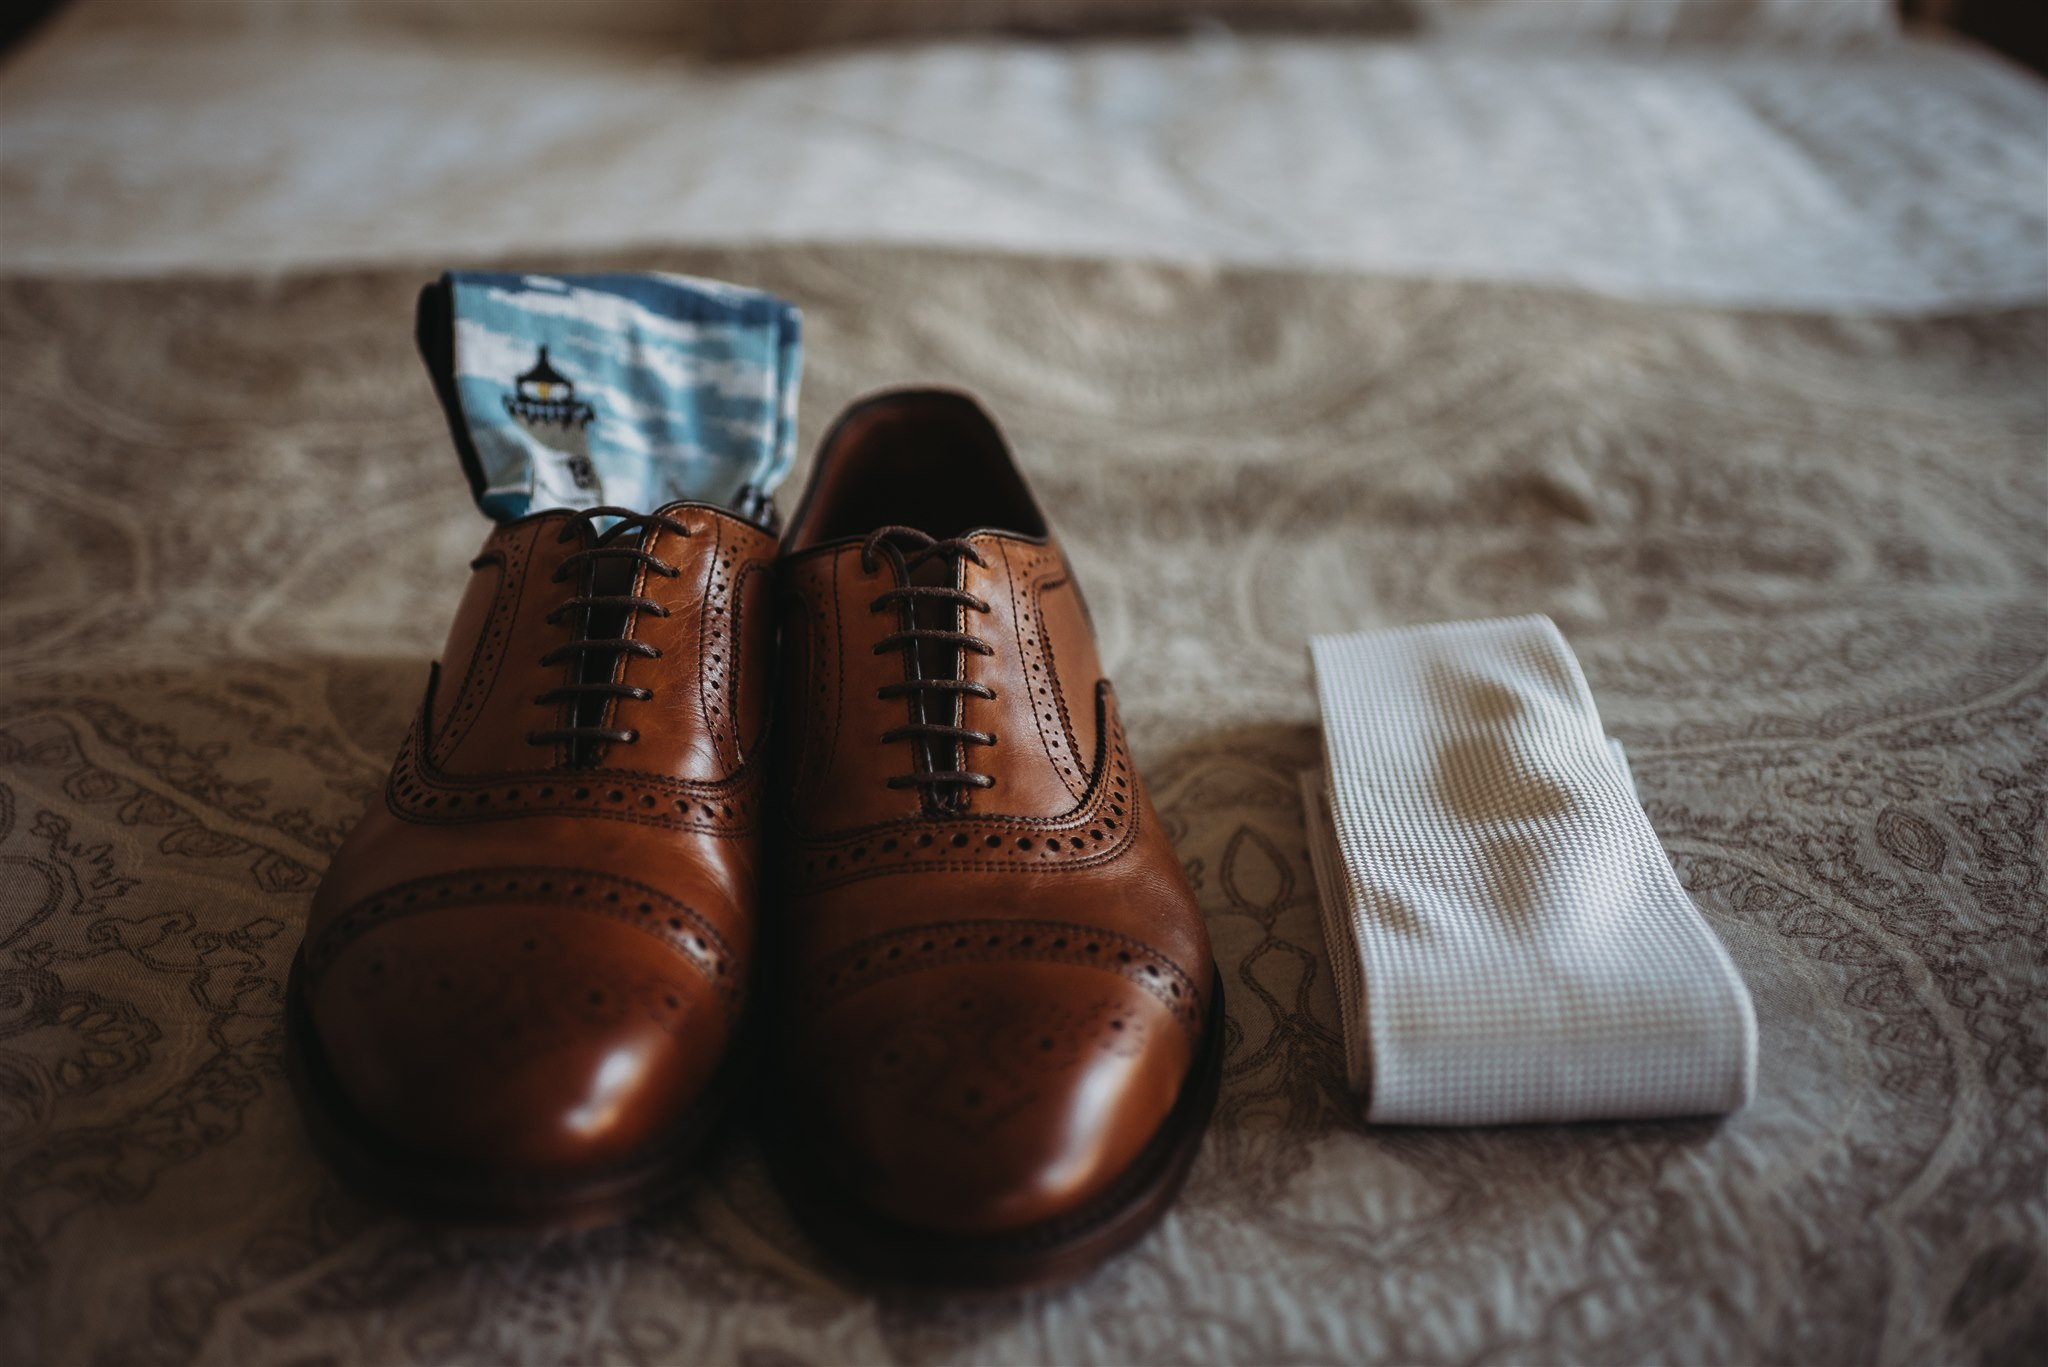 the grooms accessories photographed on the bed